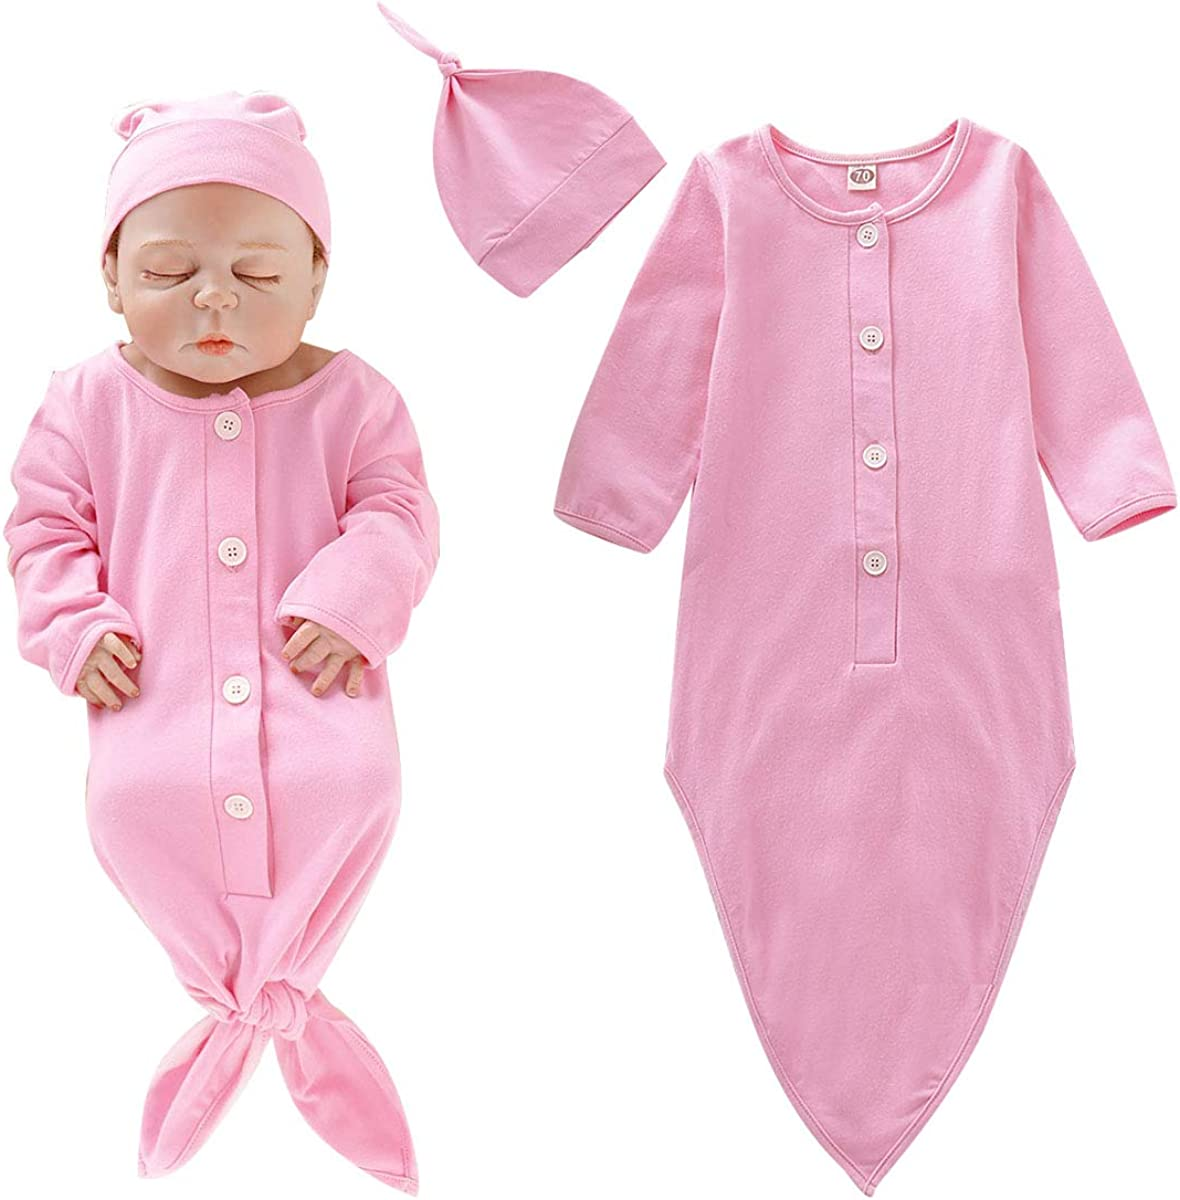 Baby Gown Newborn Cotton Nightgown Long Sleeve Stripe Baby Sleeping Bags Baby Boy Girl Coming Home Outfits Set